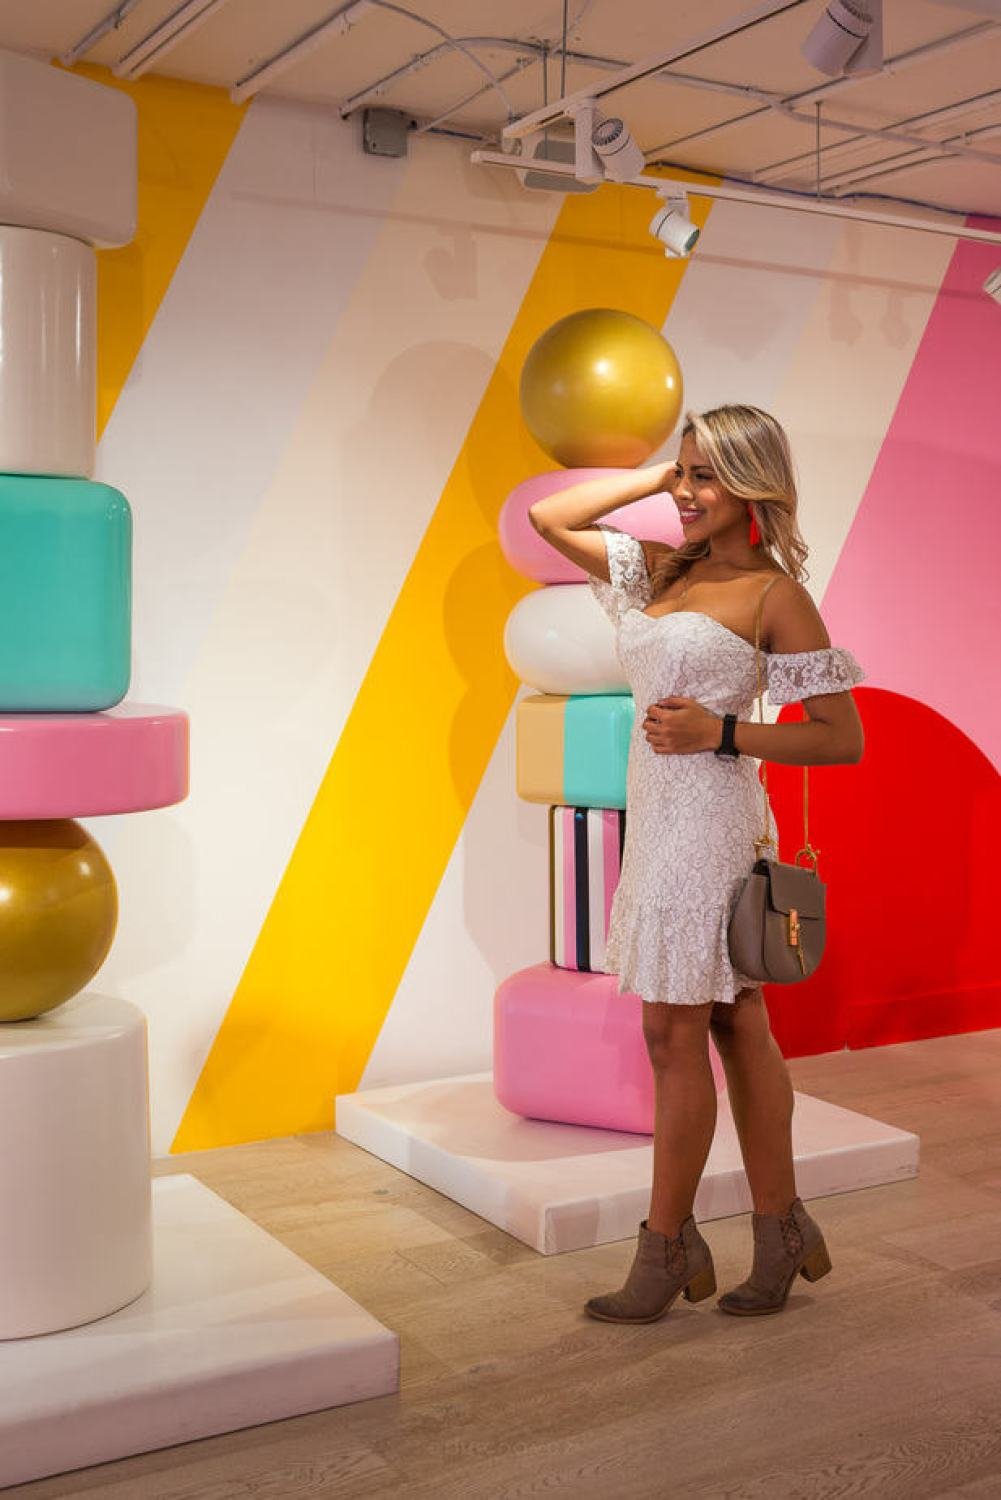 Museum of Ice Cream Miami a place as colorful as you would imagine - image  on https://blog.edinchavez.com